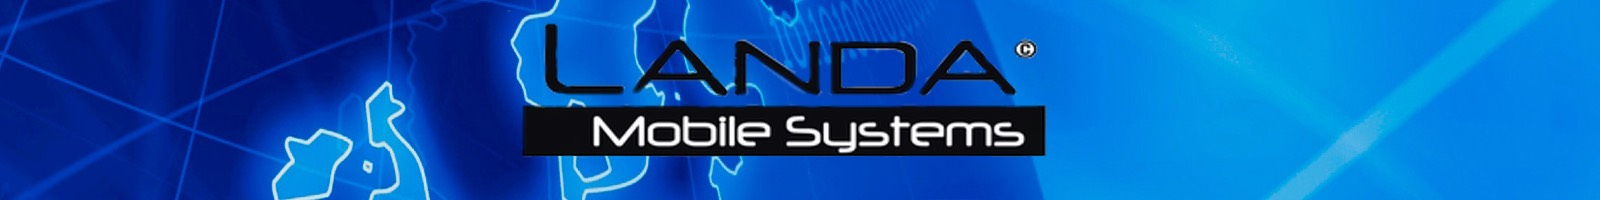 Landa Mobile Systems LLC pagelmslogobanner 2017